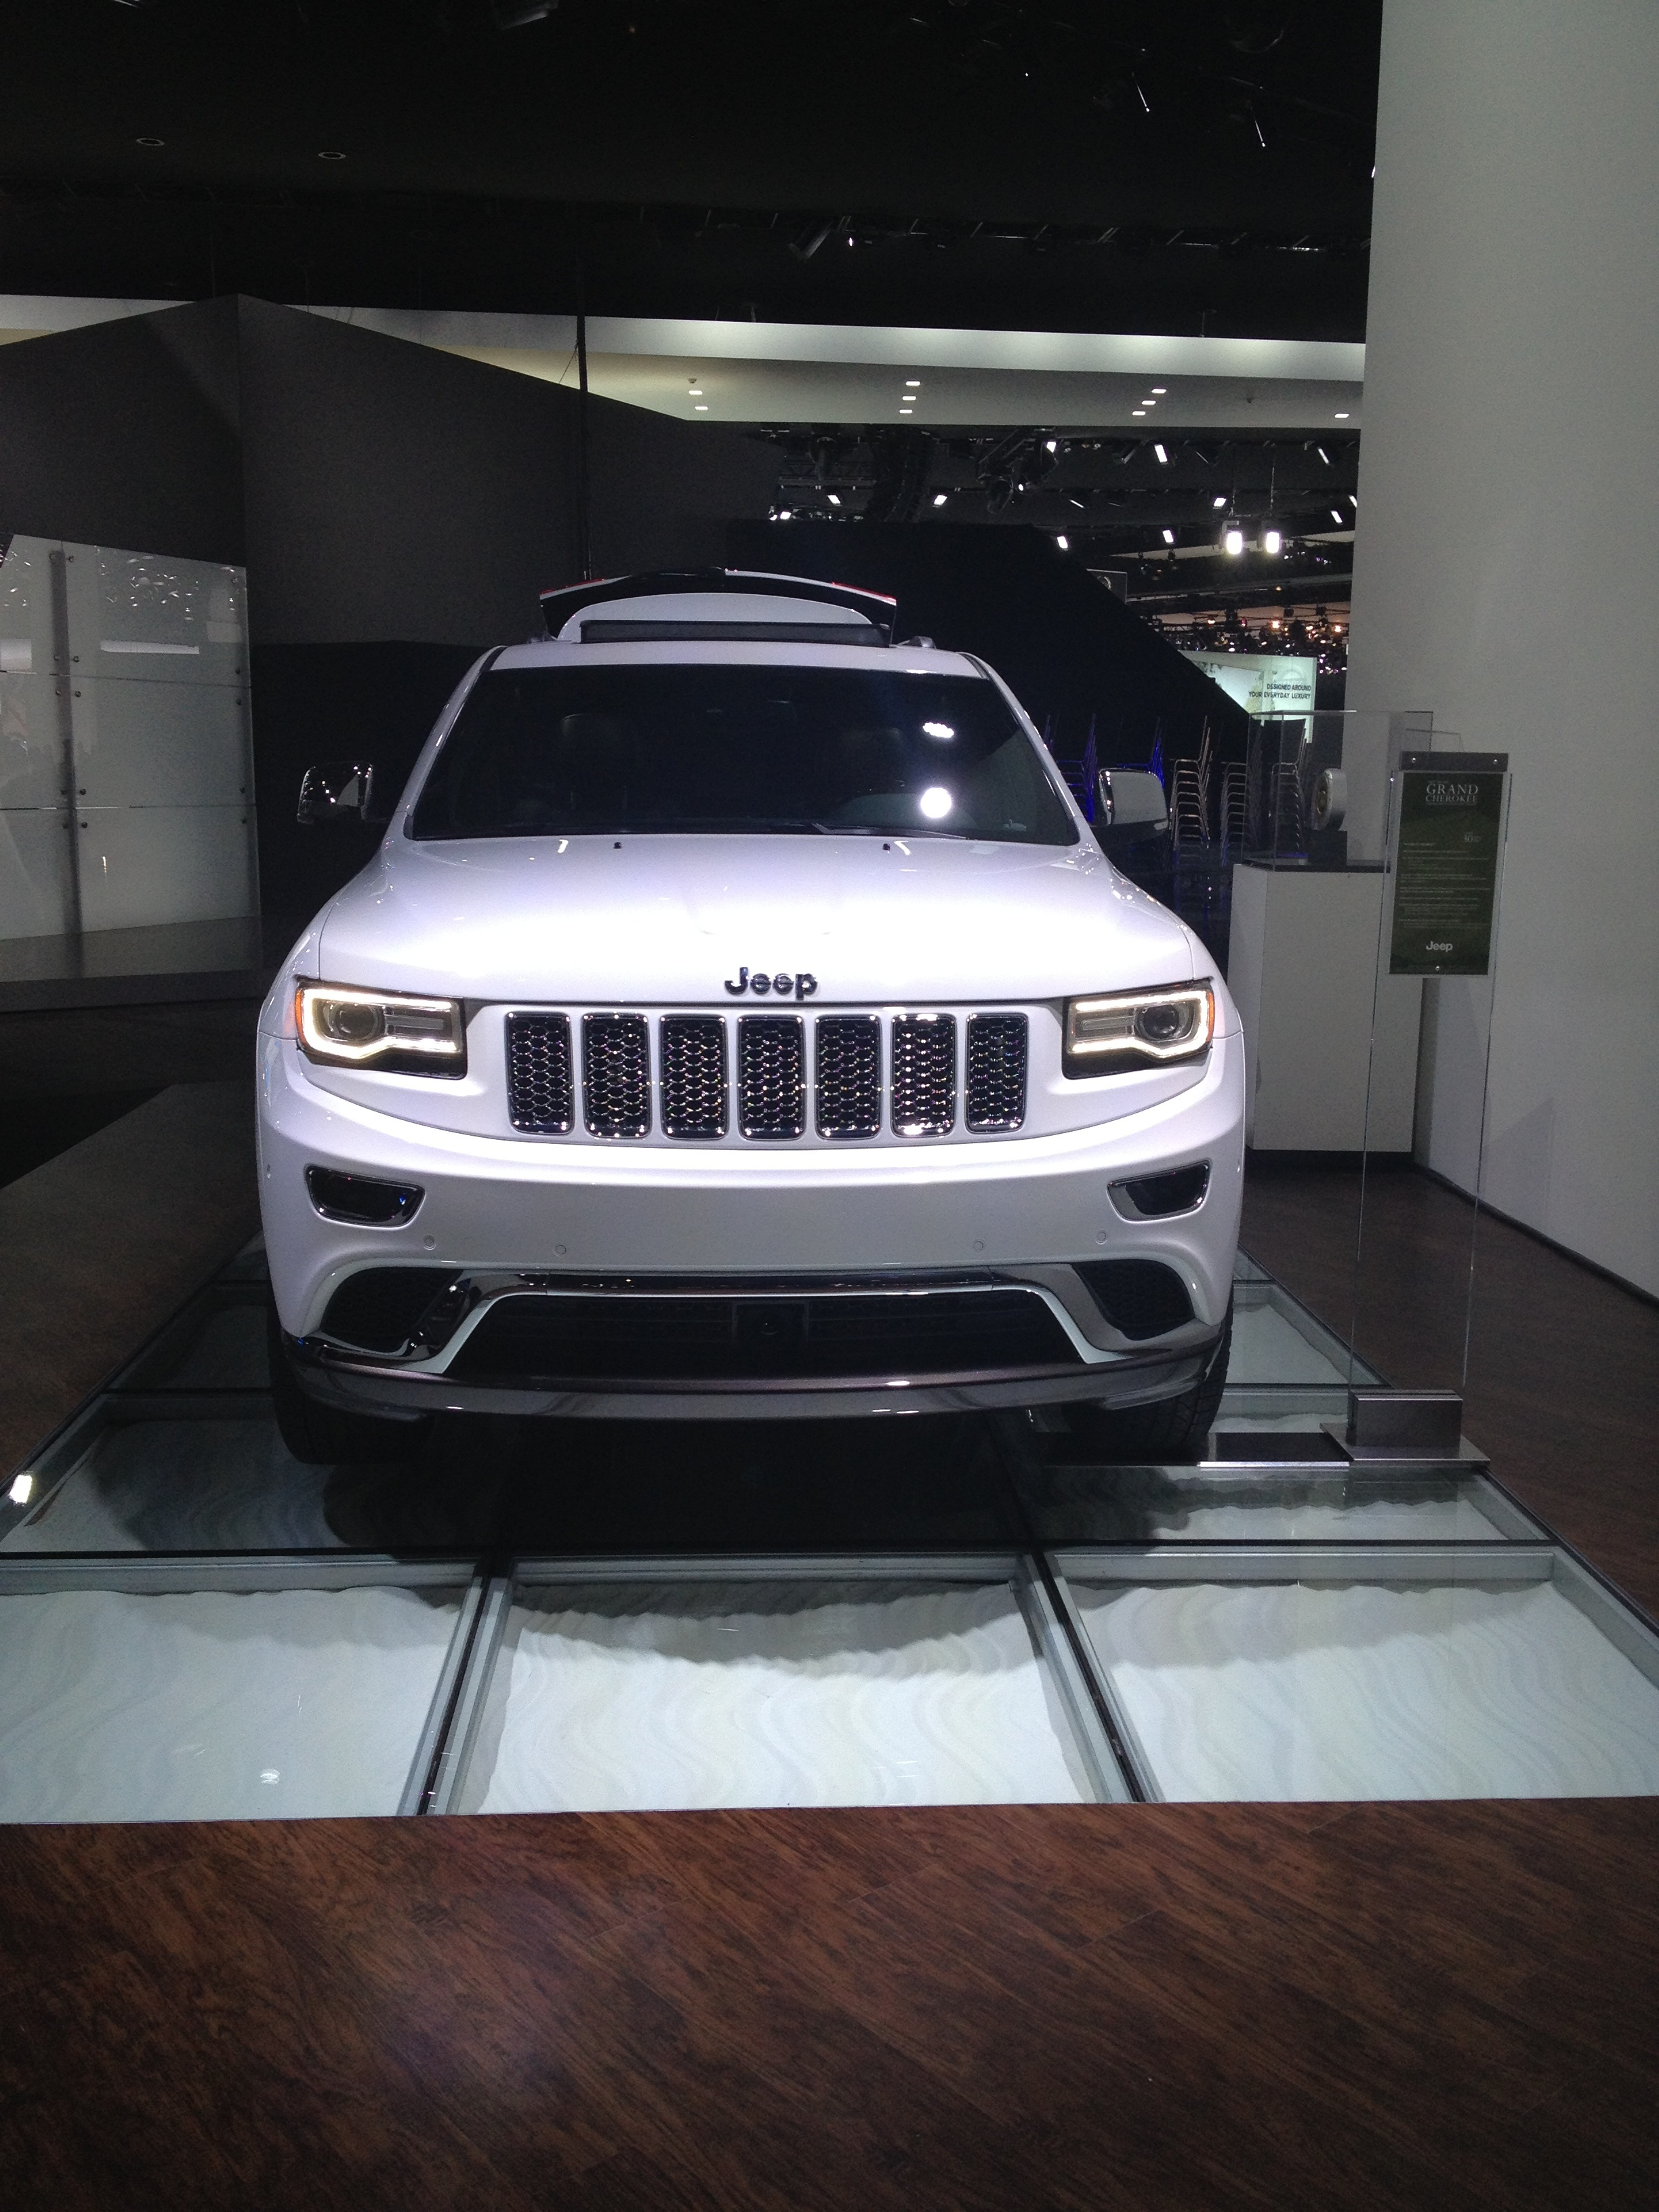 Ann Arbor Jeep File:2014 Jeep Grand Cherokee Summit (8402991743).jpg ...